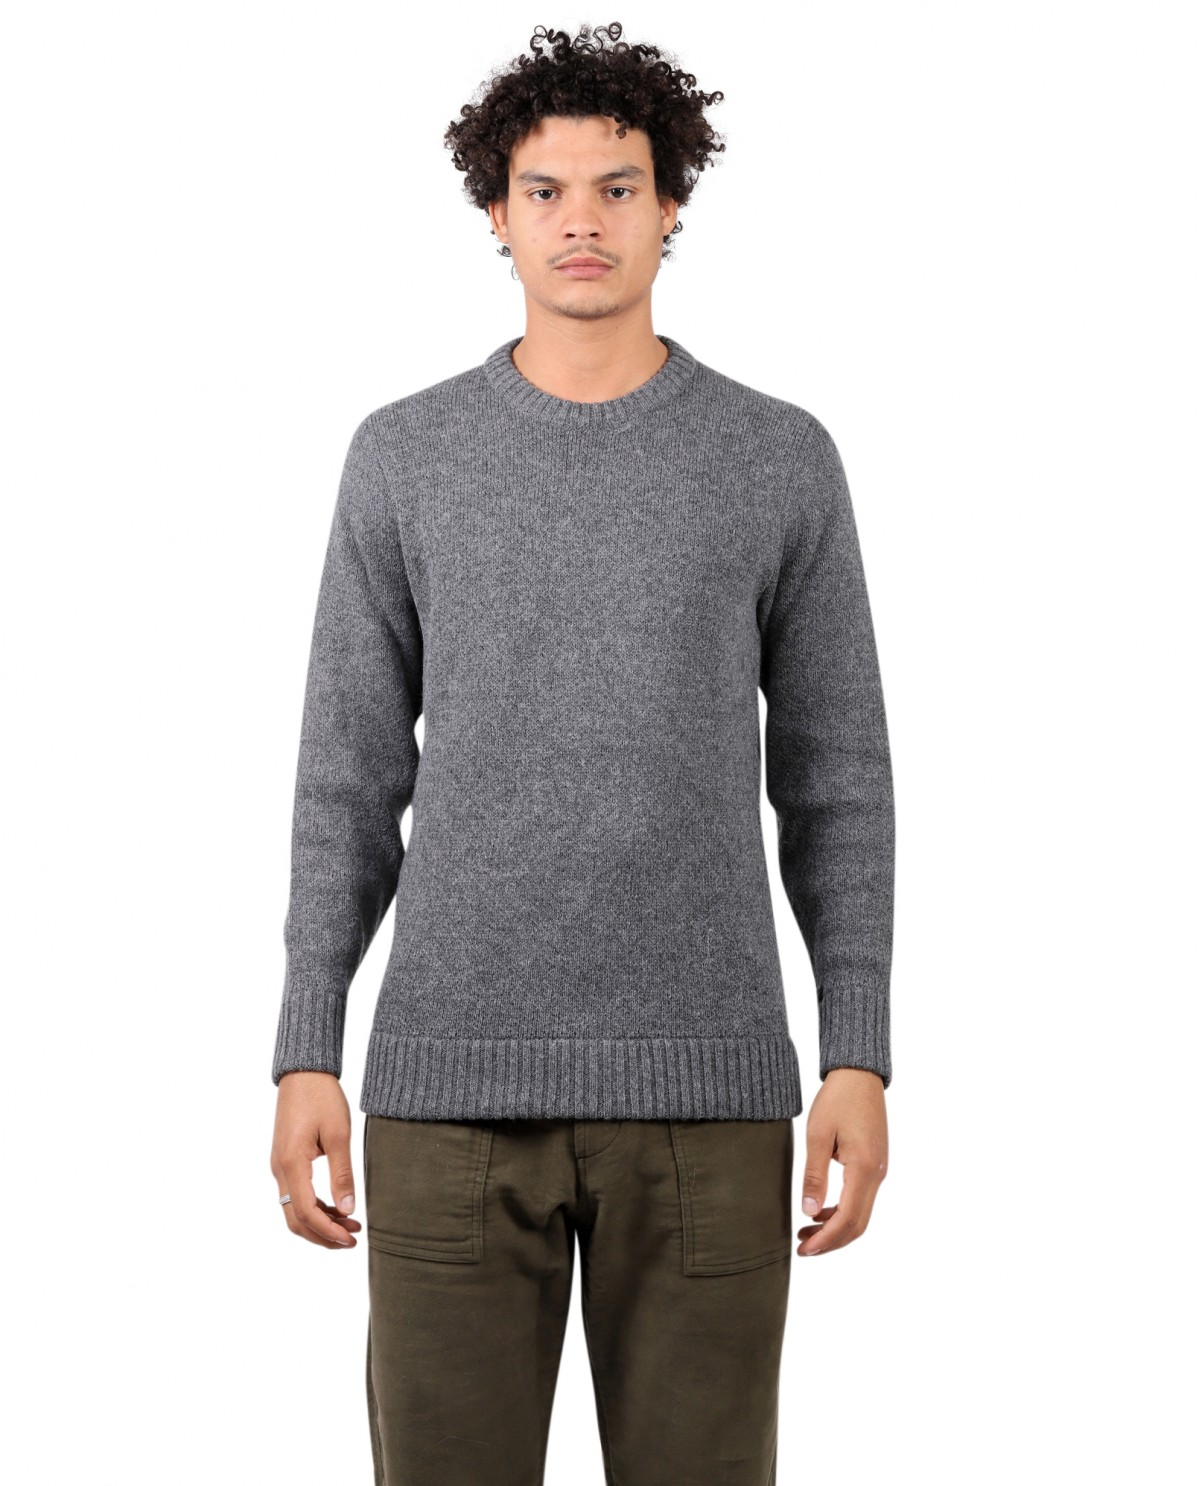 The Inoue Brothers grey logo sweater